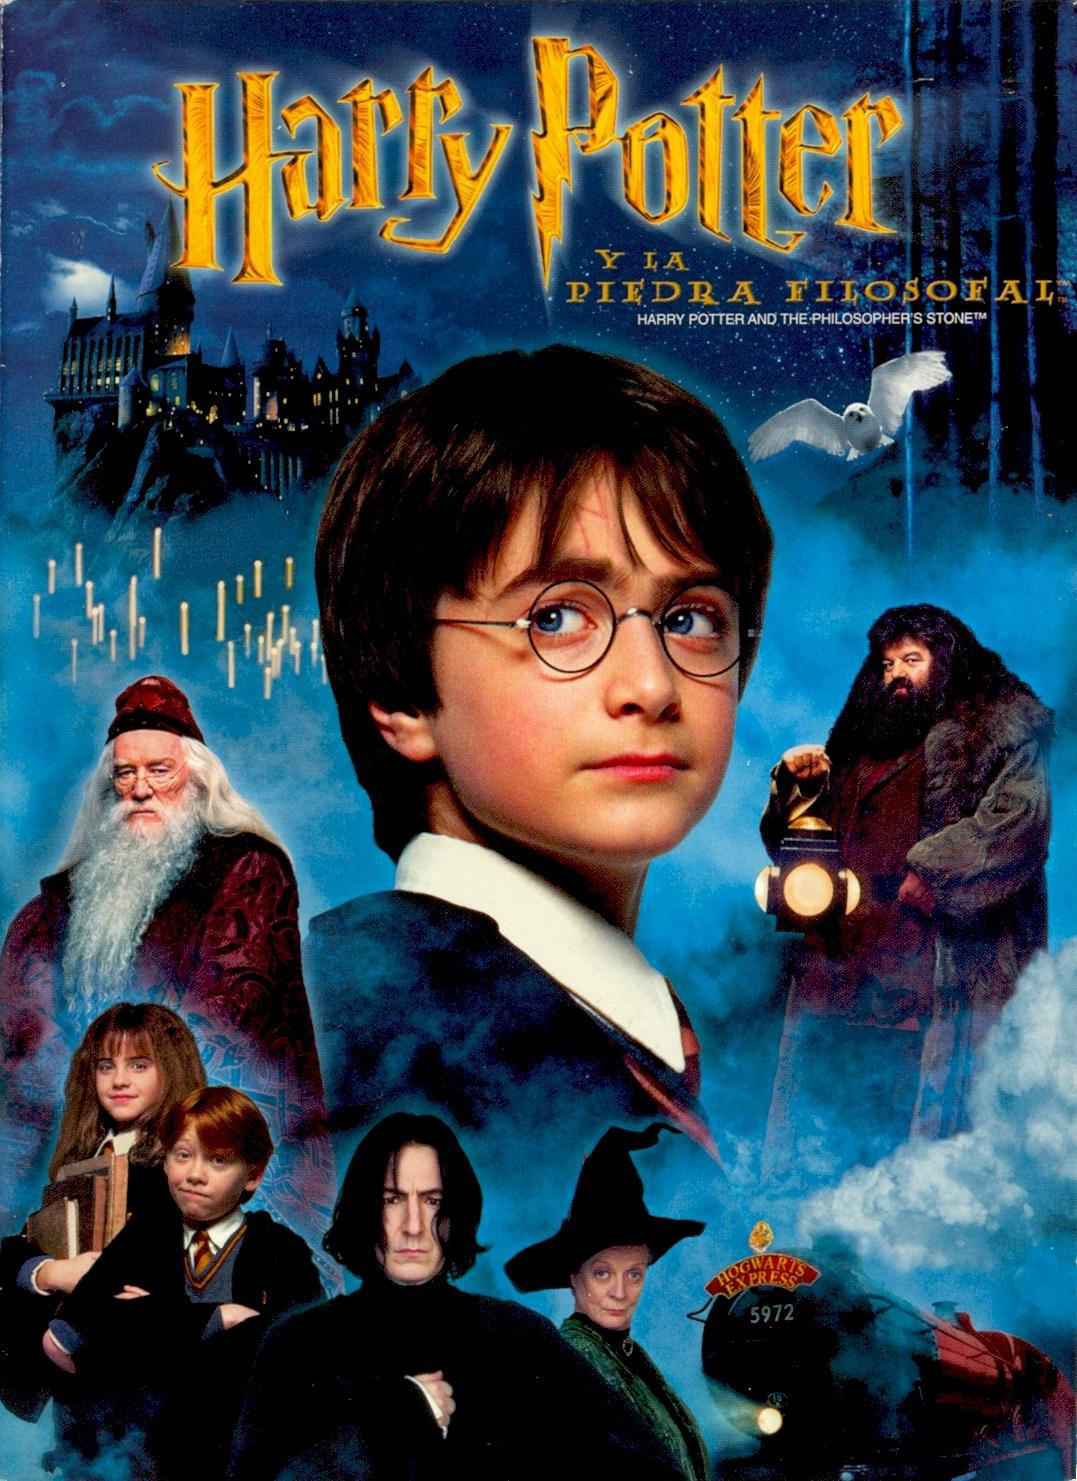 In 2001, the world first saw an absolutely fabulous film about a boy who became a wizard. It immediately captured the imagination of children and adults all over the world.